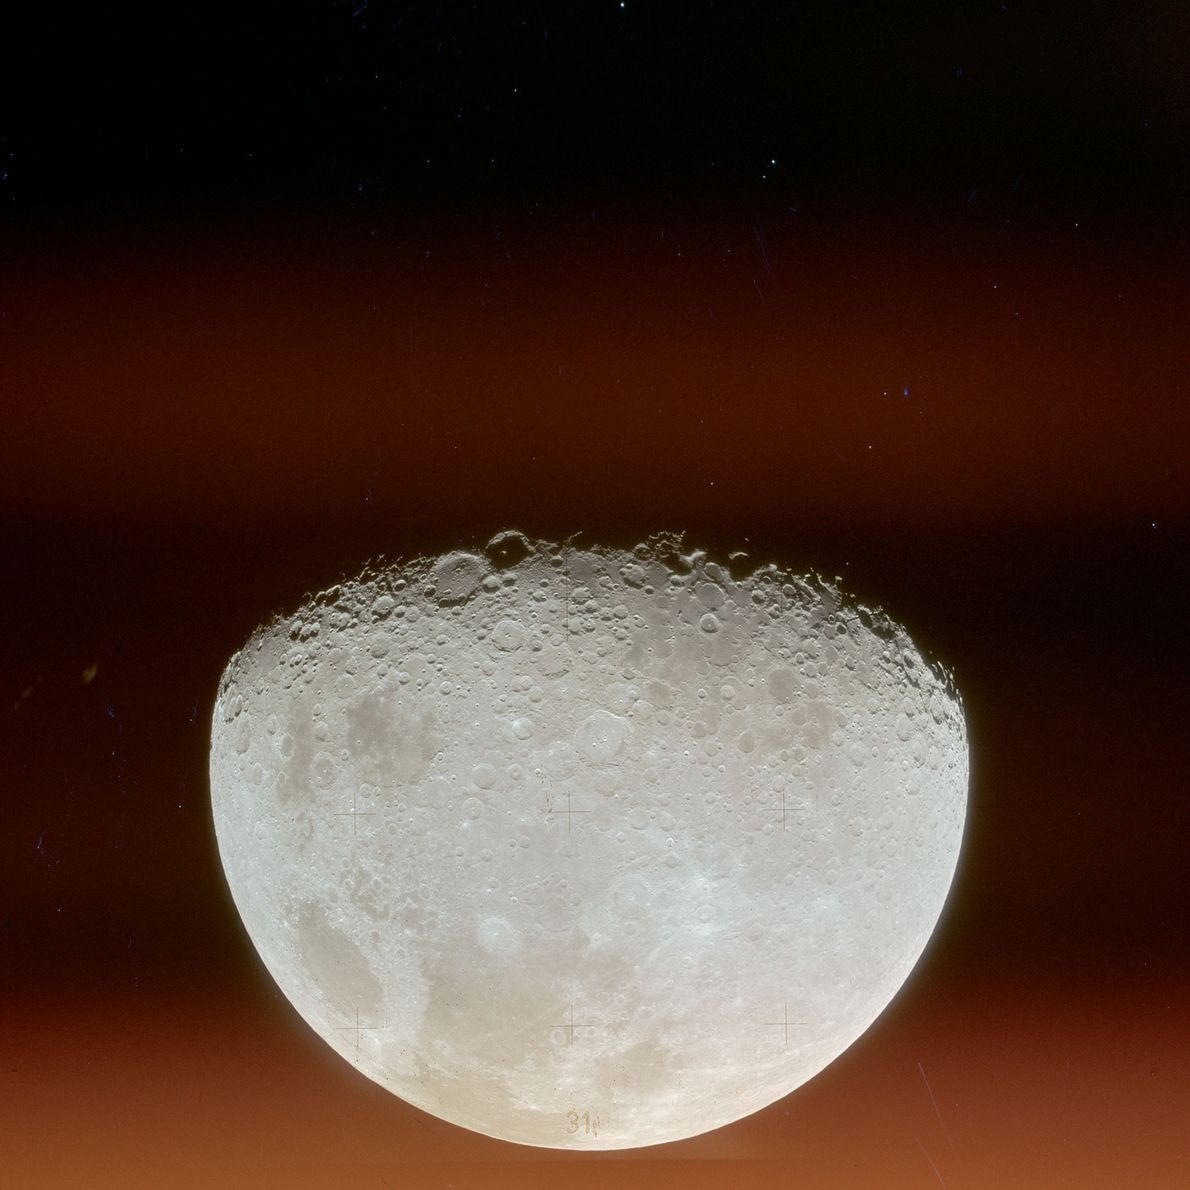 A view of the Moon after leaving lunar orbit.